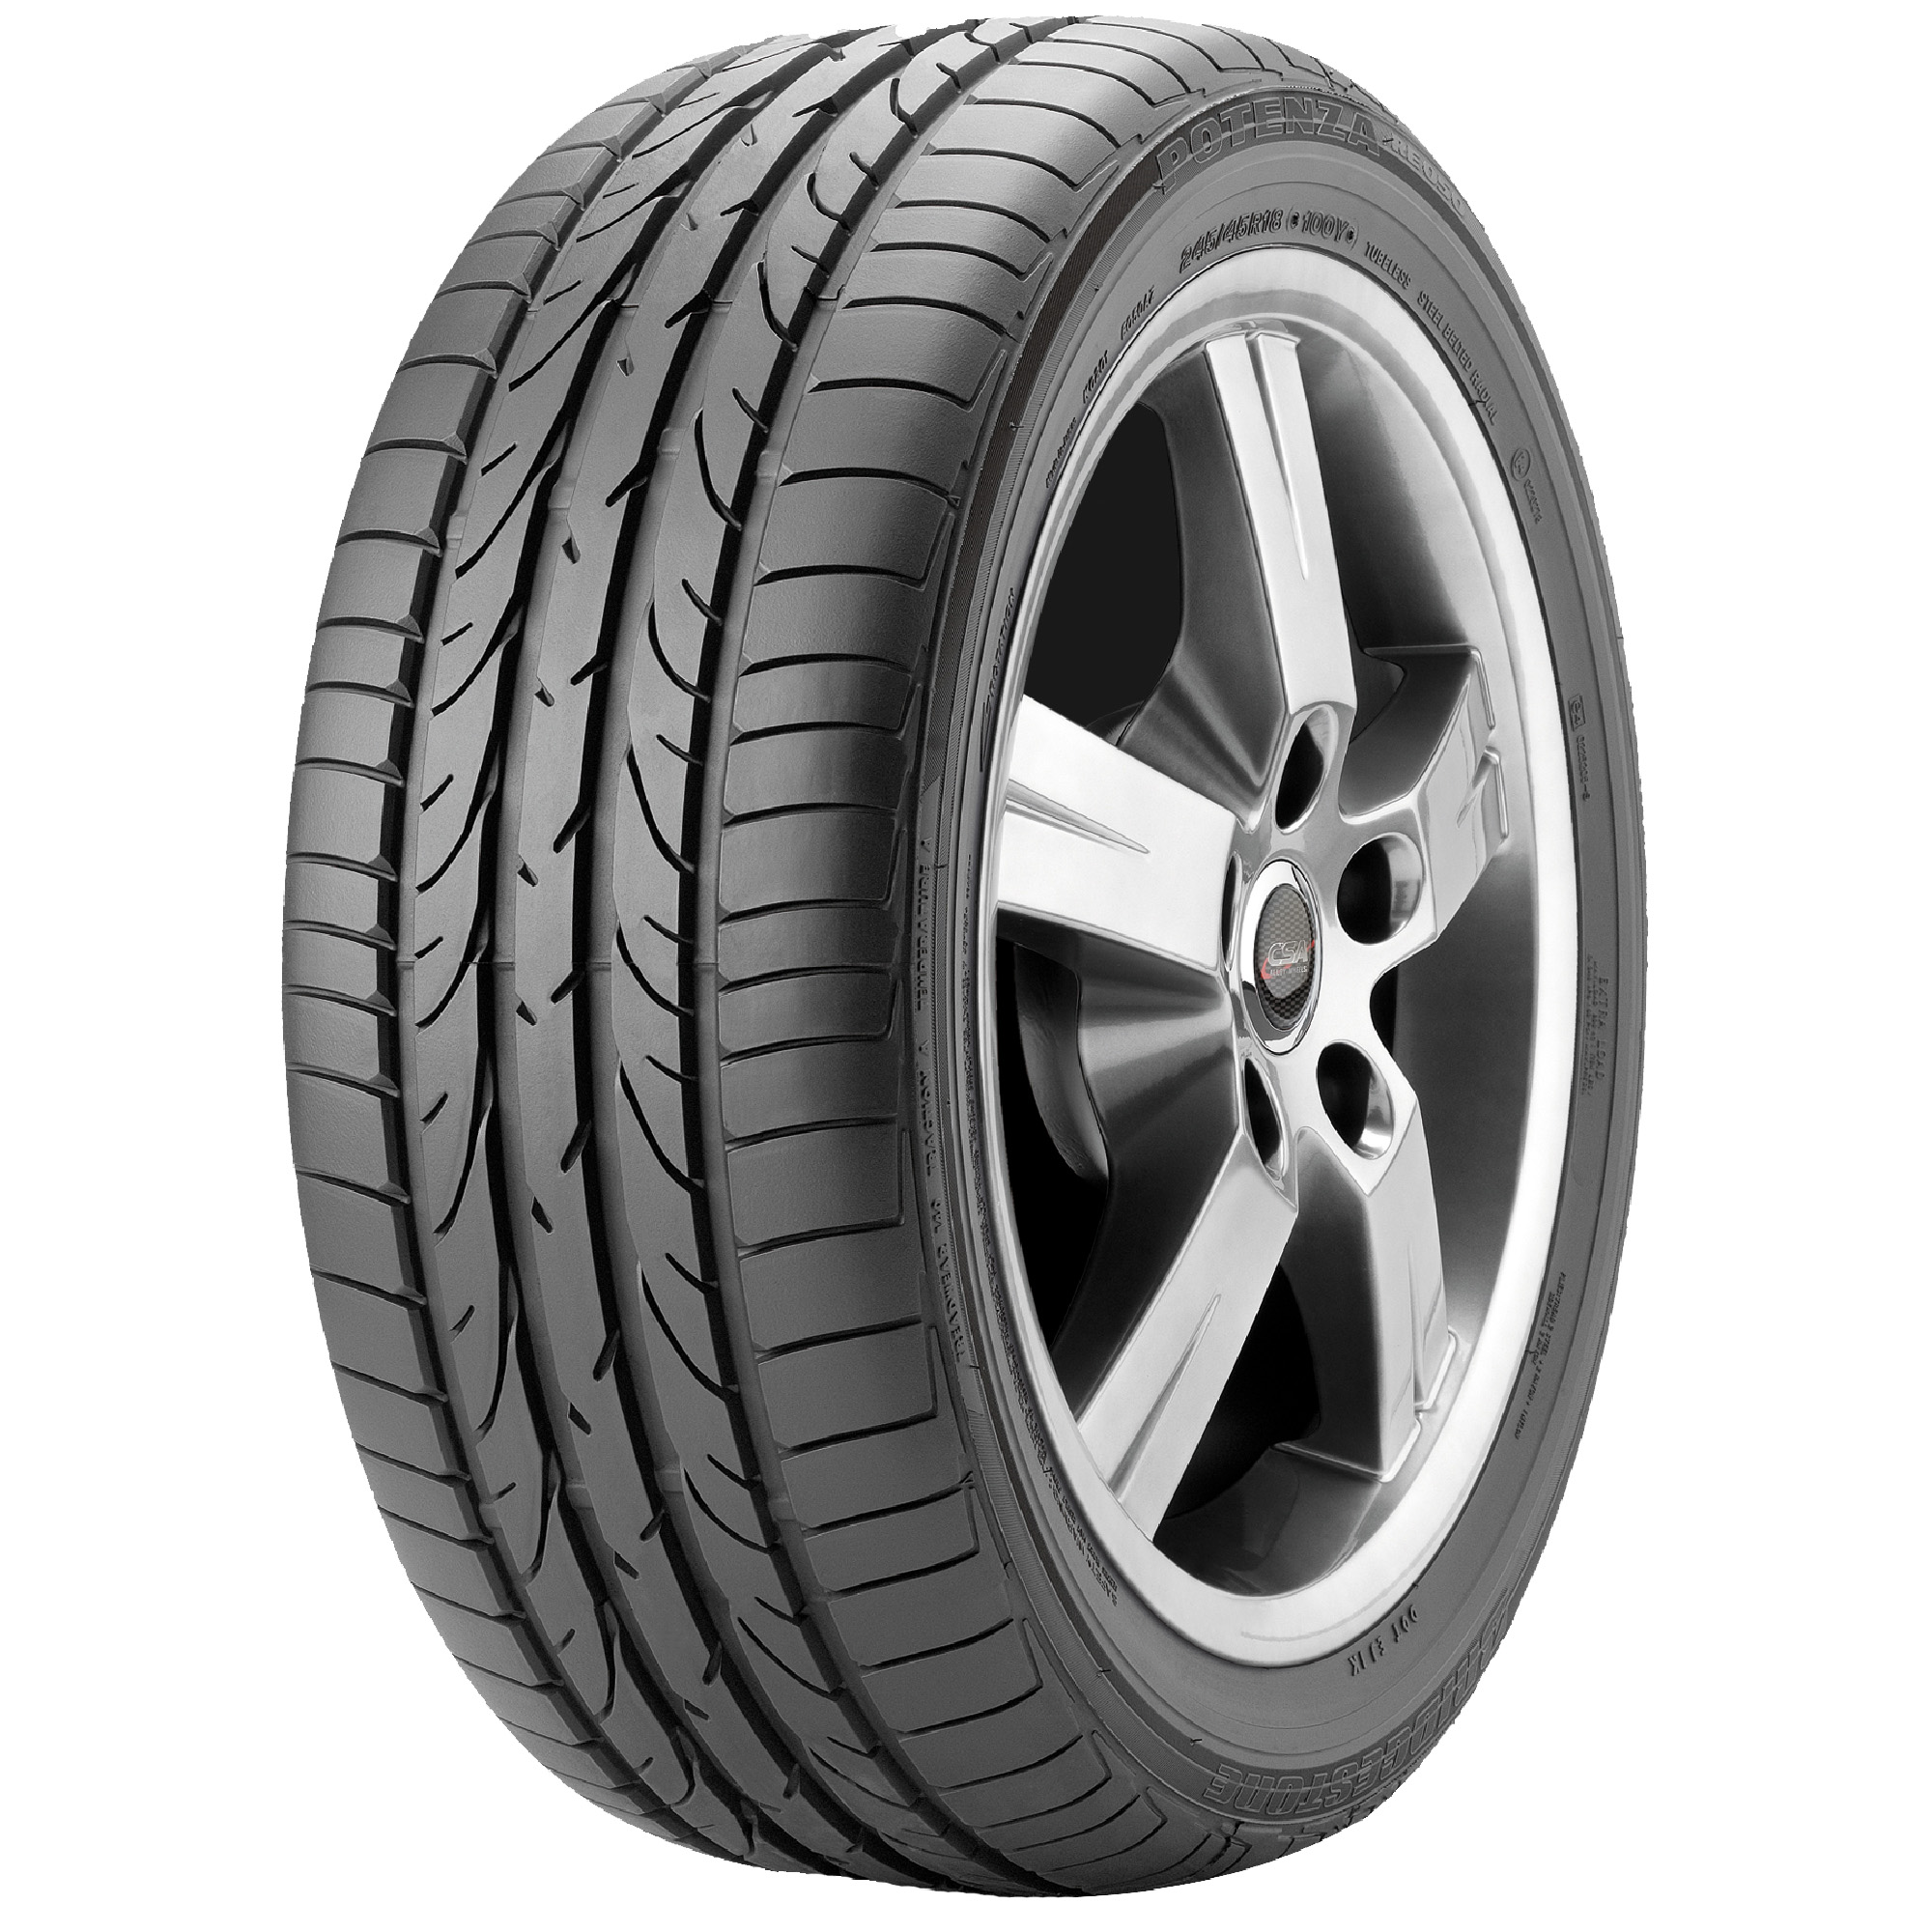 Potenza RE050 Run-Flat Technology Tyre